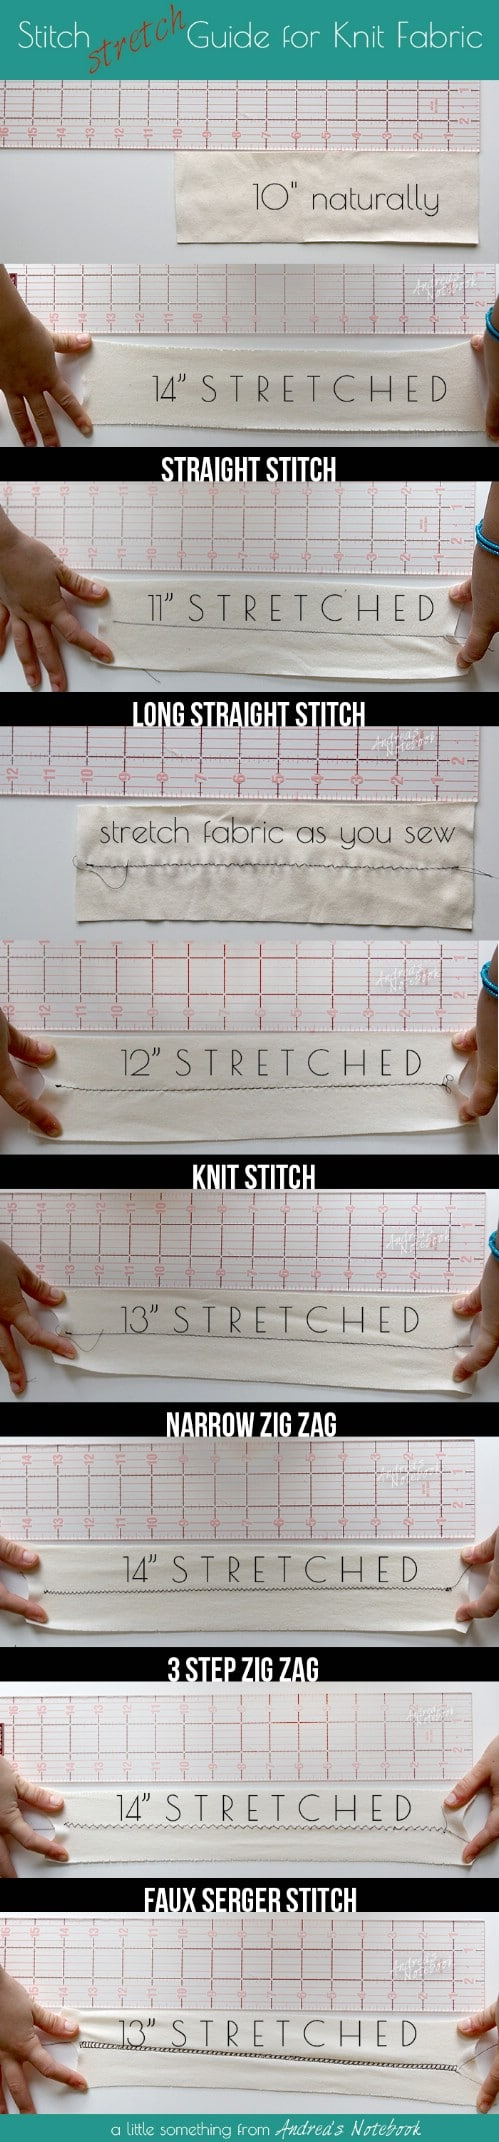 Sew Knit Fabric On Your Machine